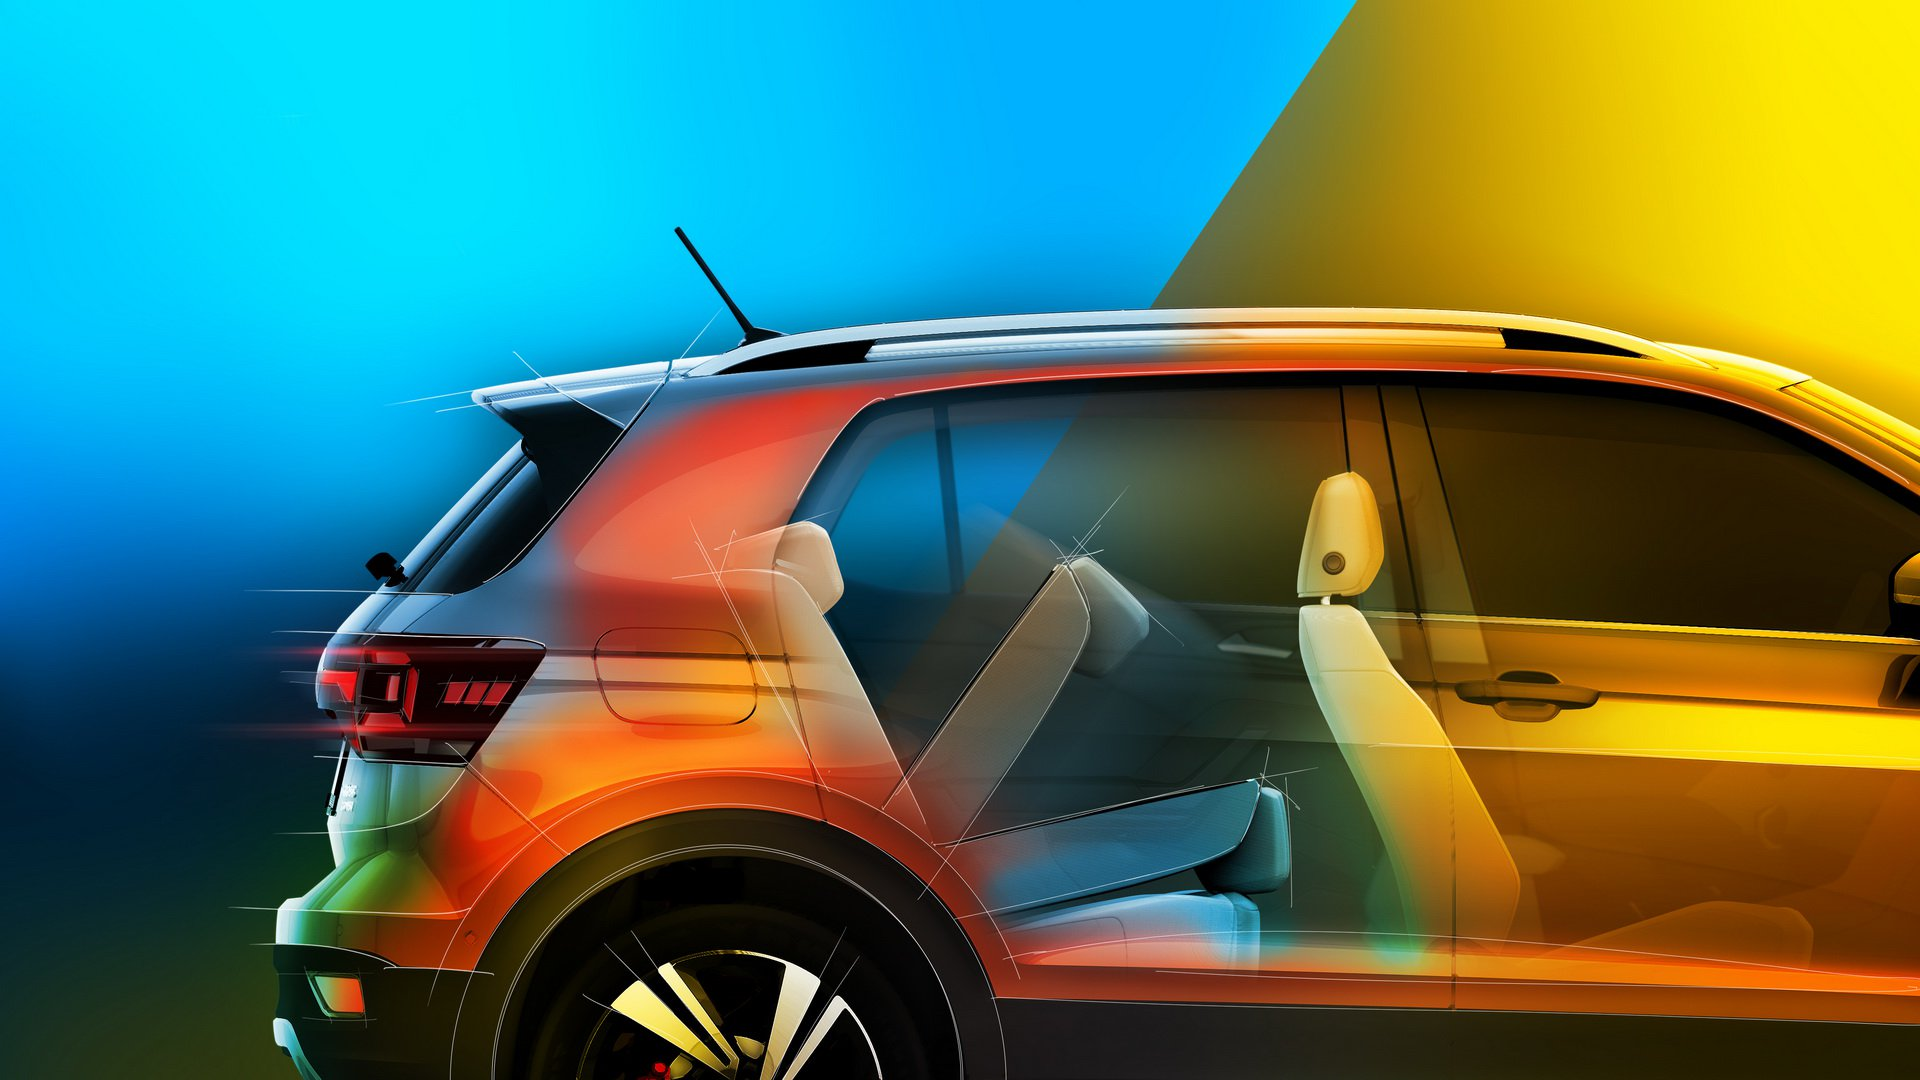 VW T-Cross seats teased